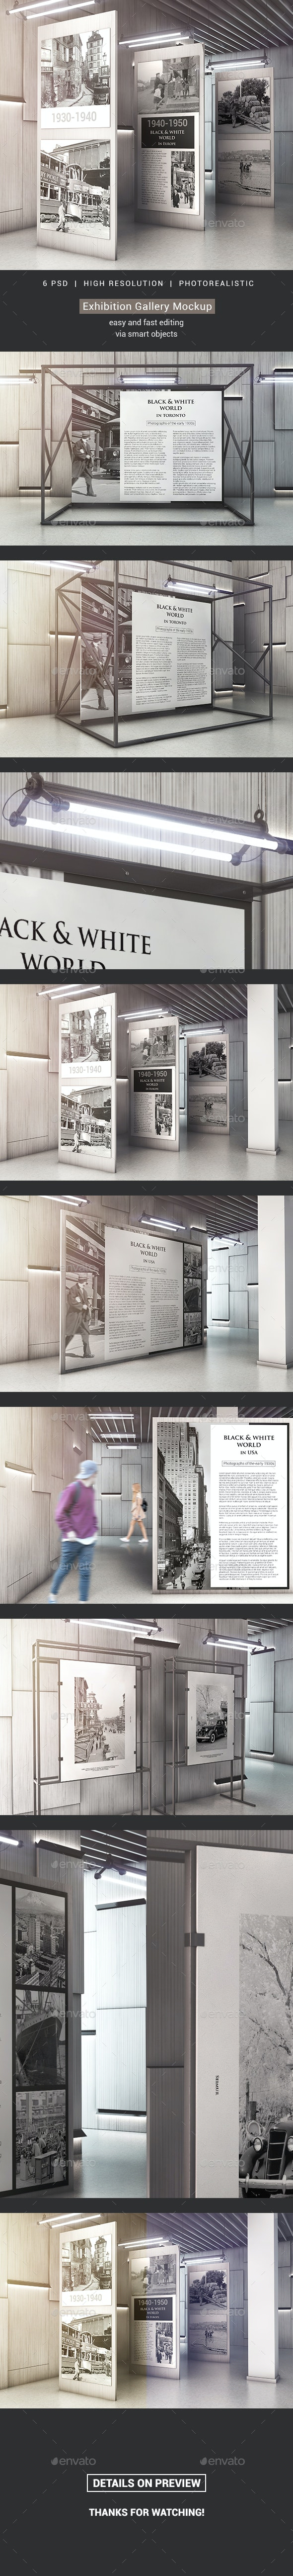 Exhibition Gallery Mockup - Posters Print